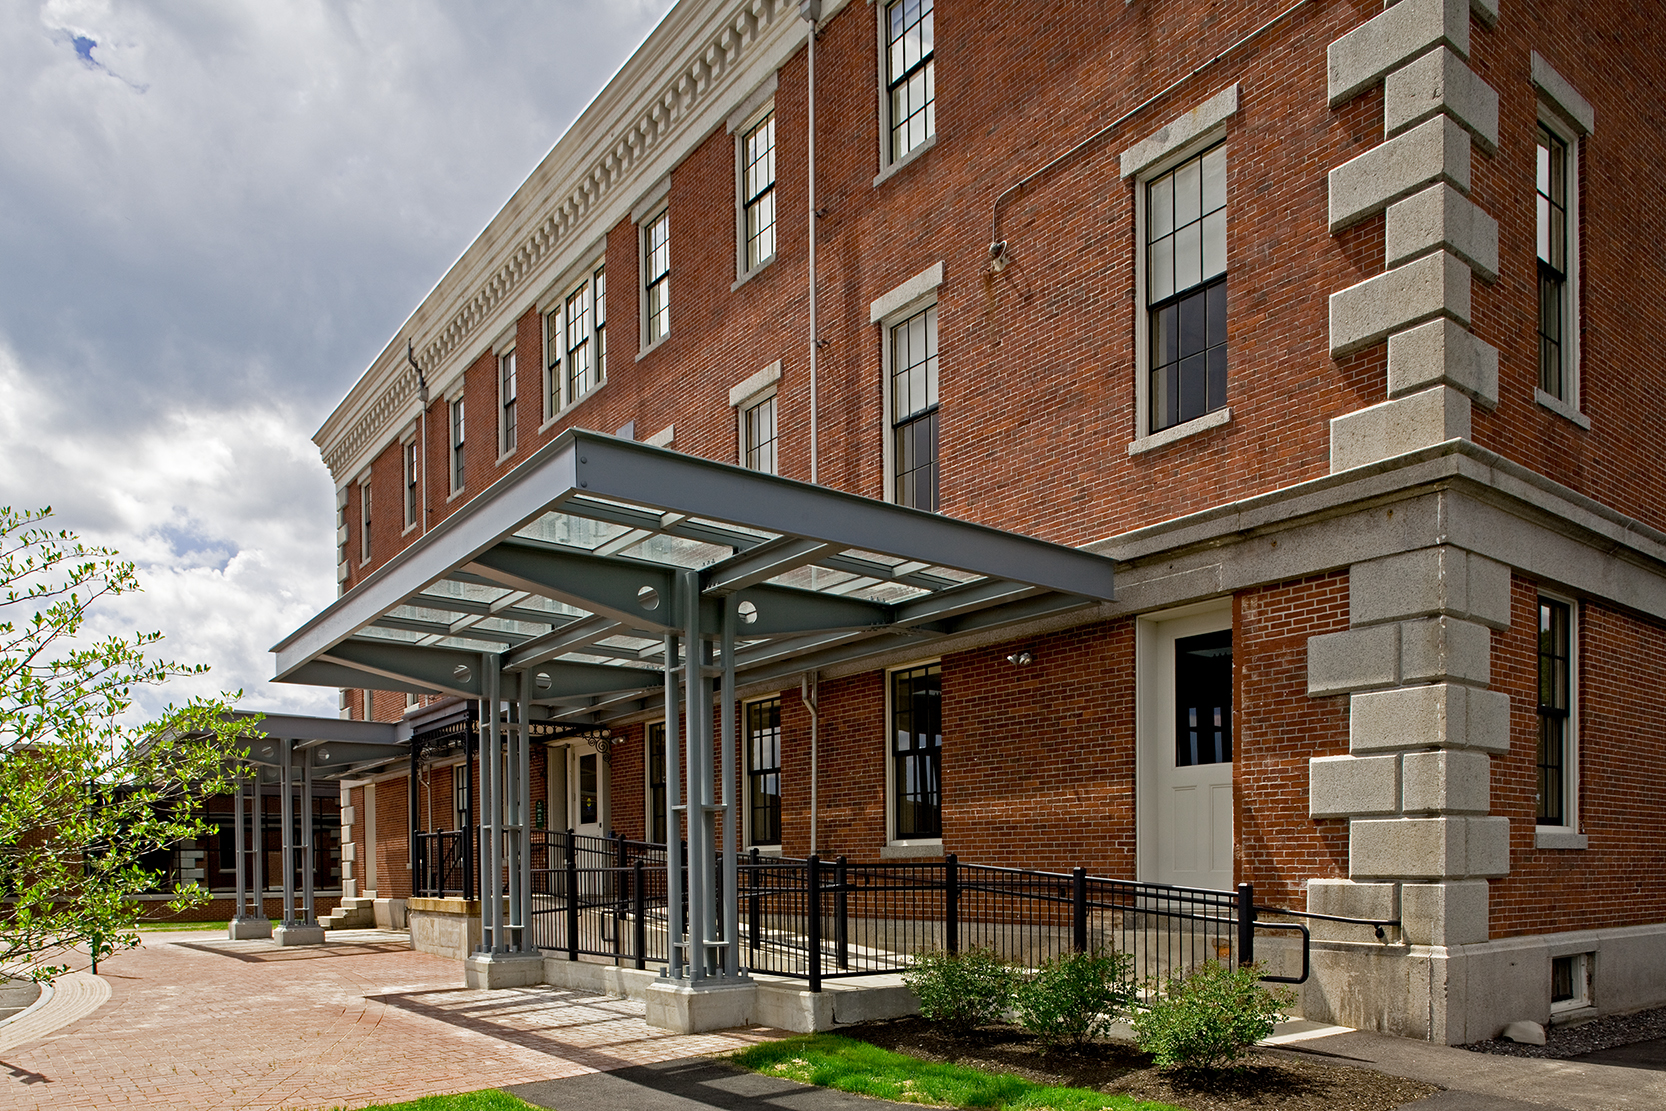 PDT added canopies to the back of the building to shelter the entry and wheelchair ramp.